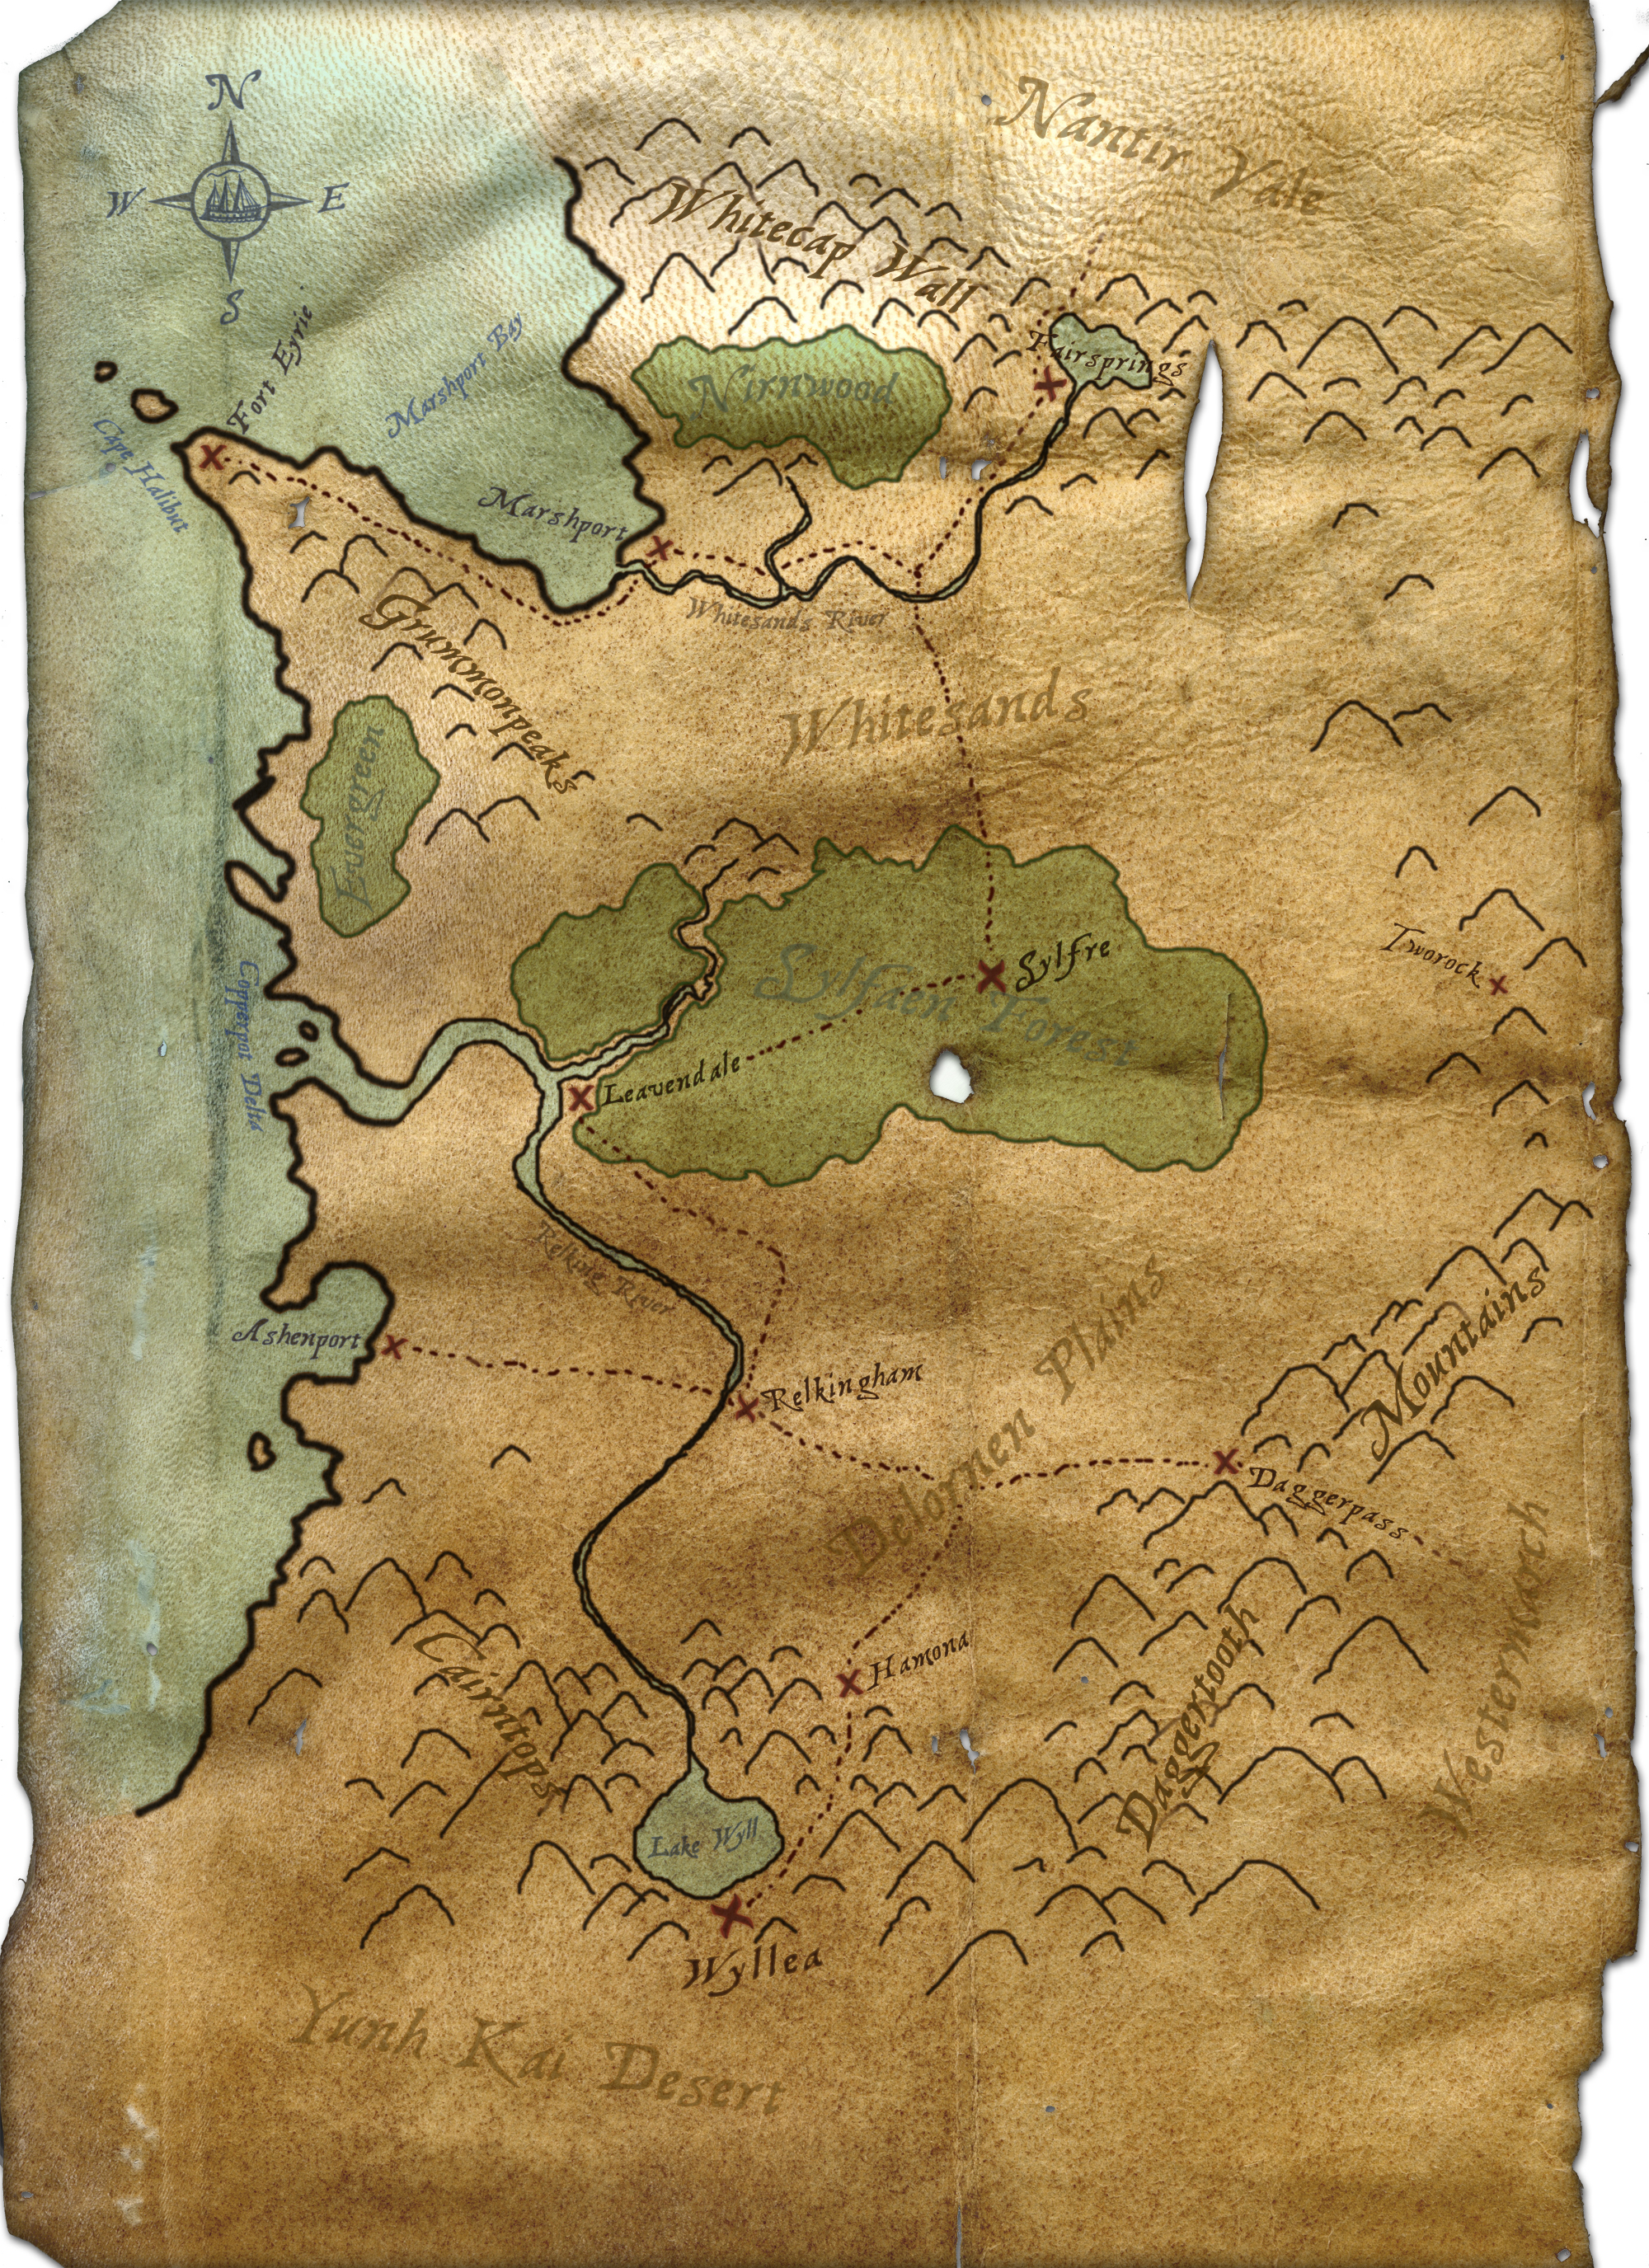 D&D: South Of The Whitecaps Campaign Map